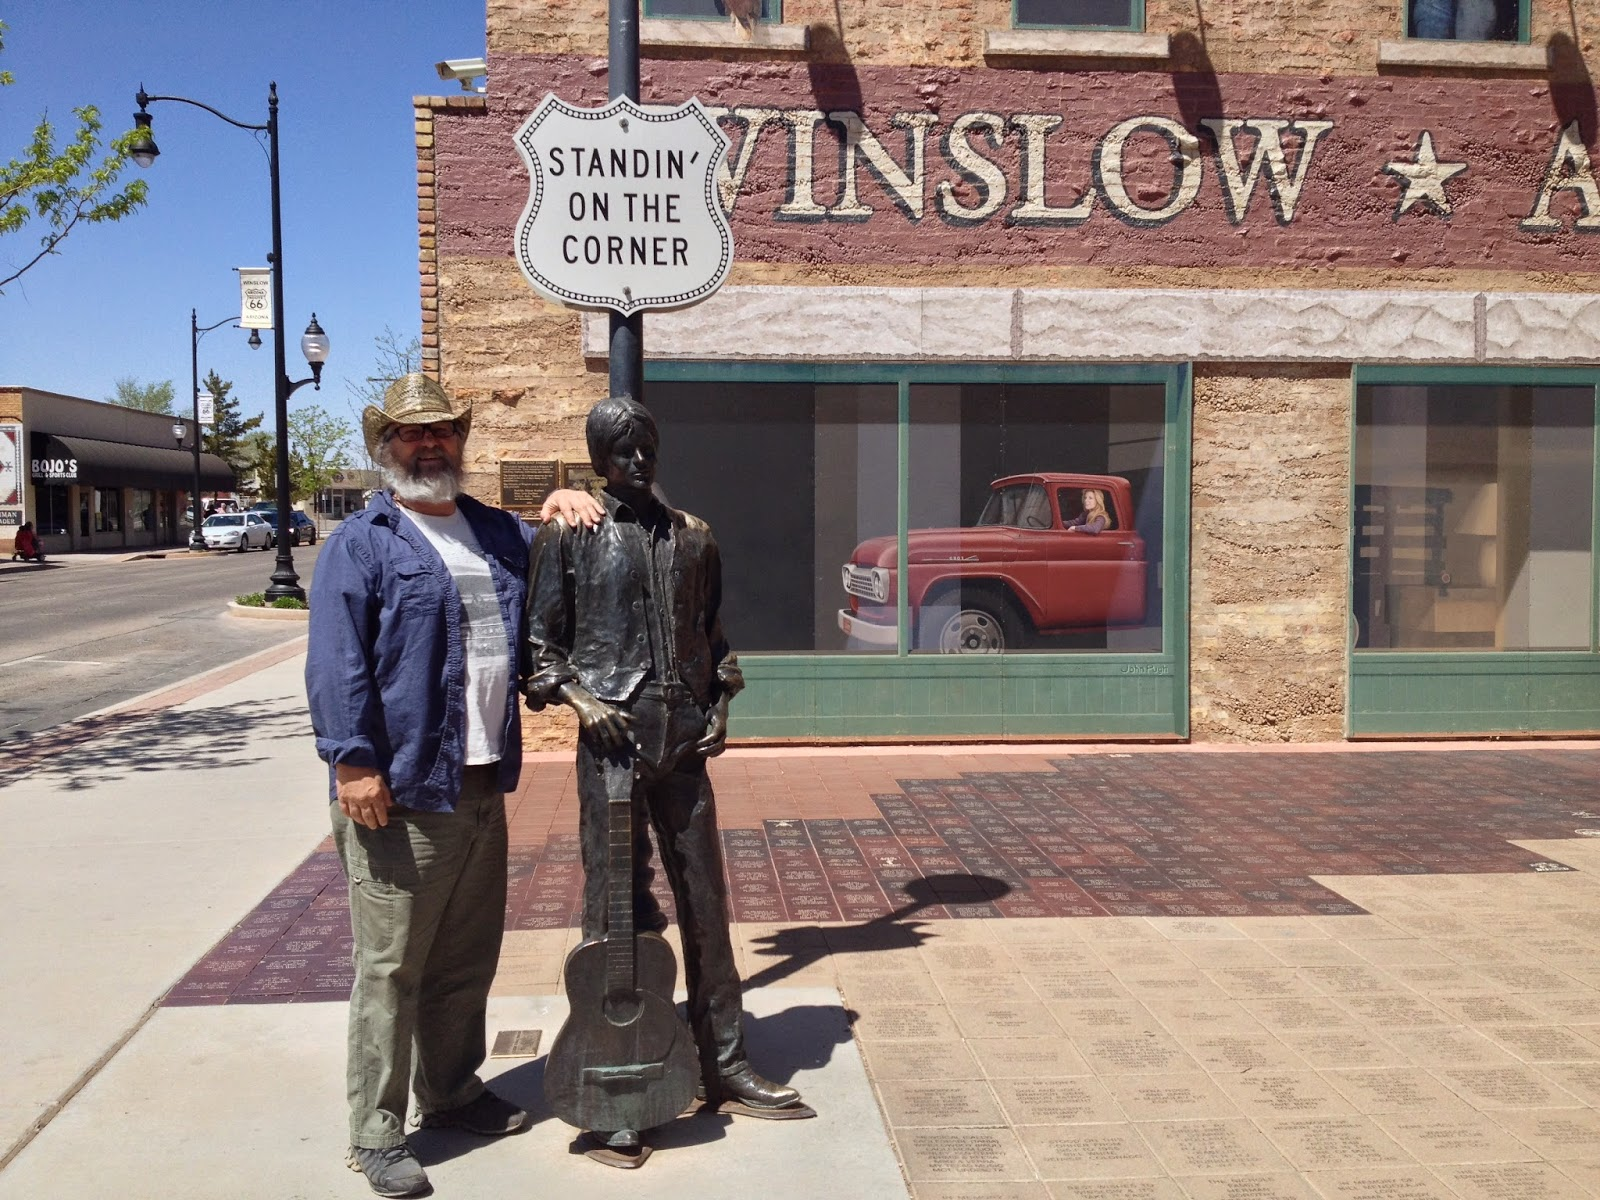 taking off standing on a corner and wandering around winslow arizona. Black Bedroom Furniture Sets. Home Design Ideas